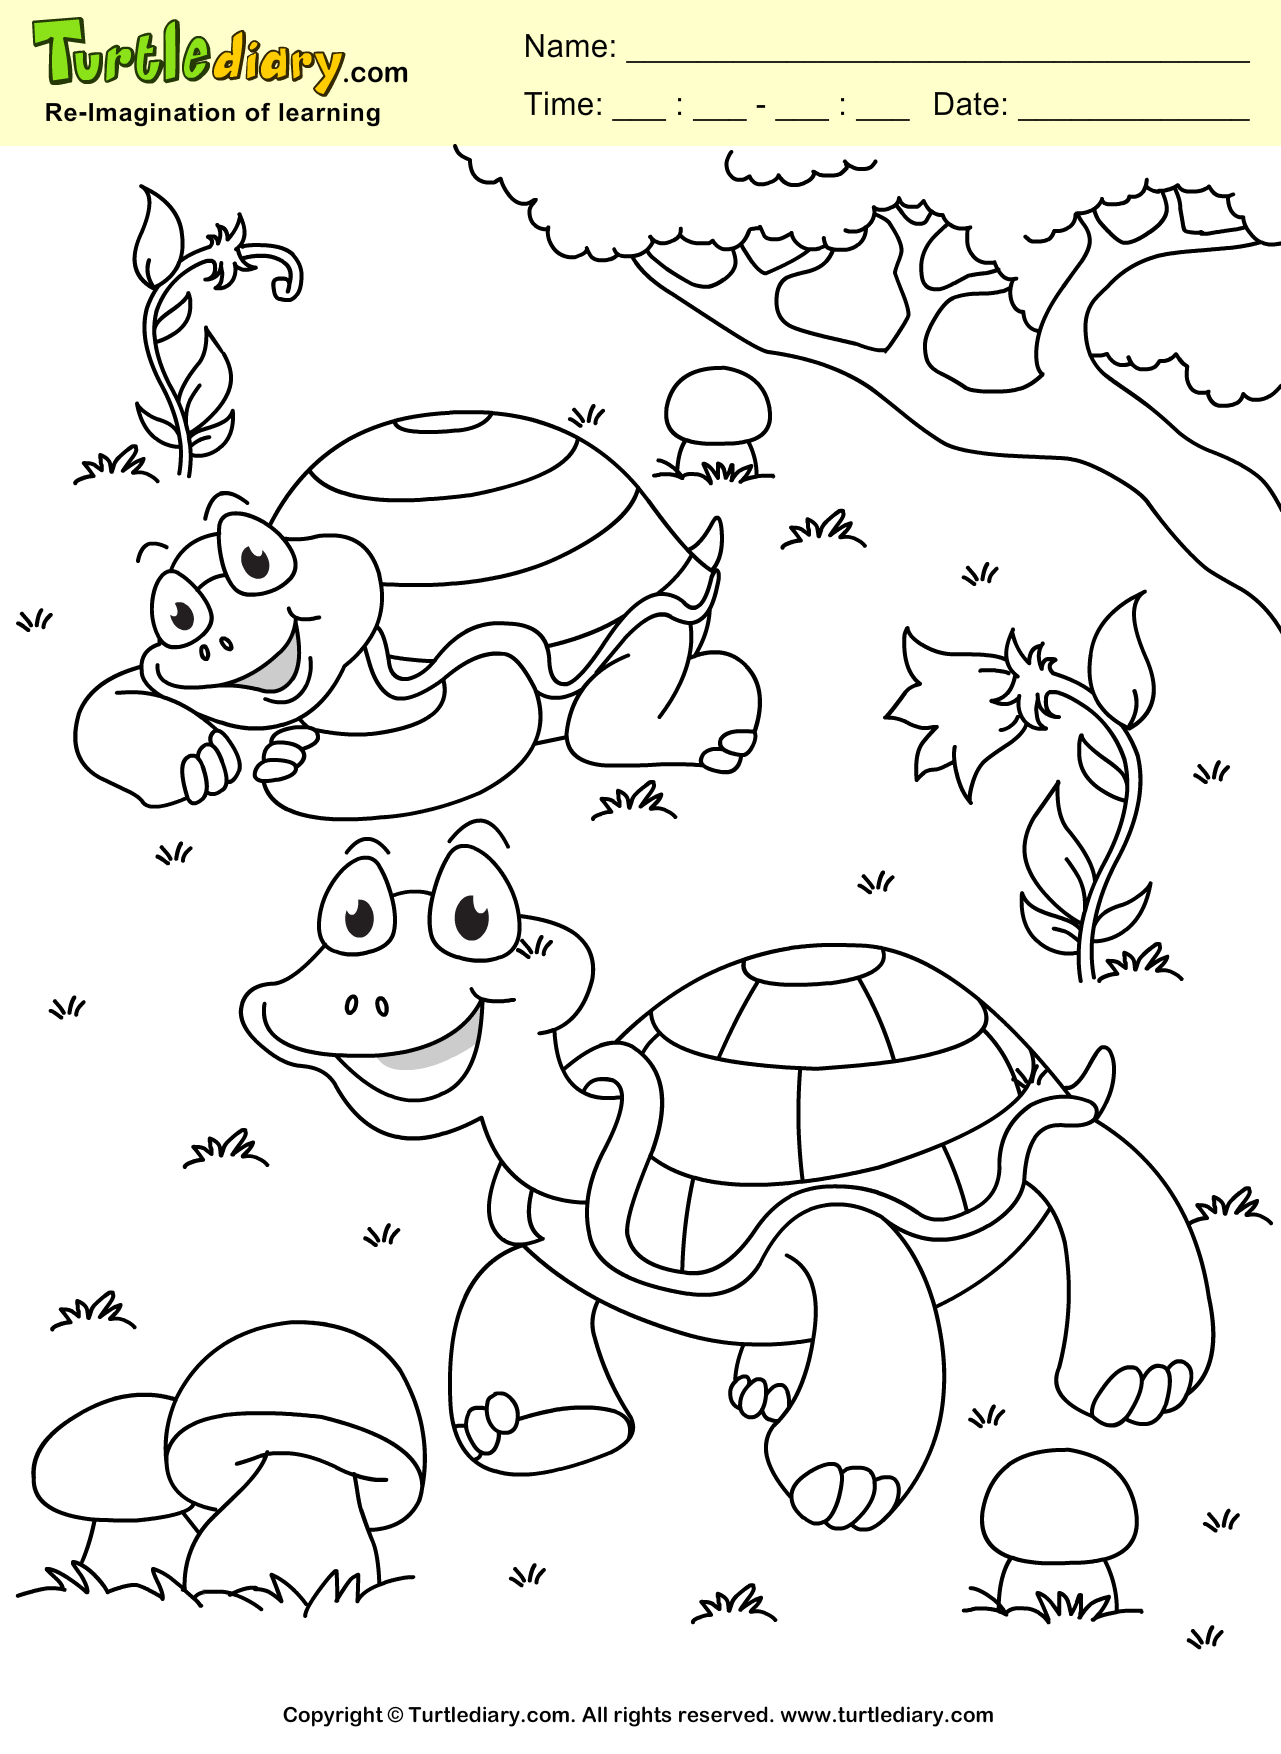 Turtle Coloring Sheet